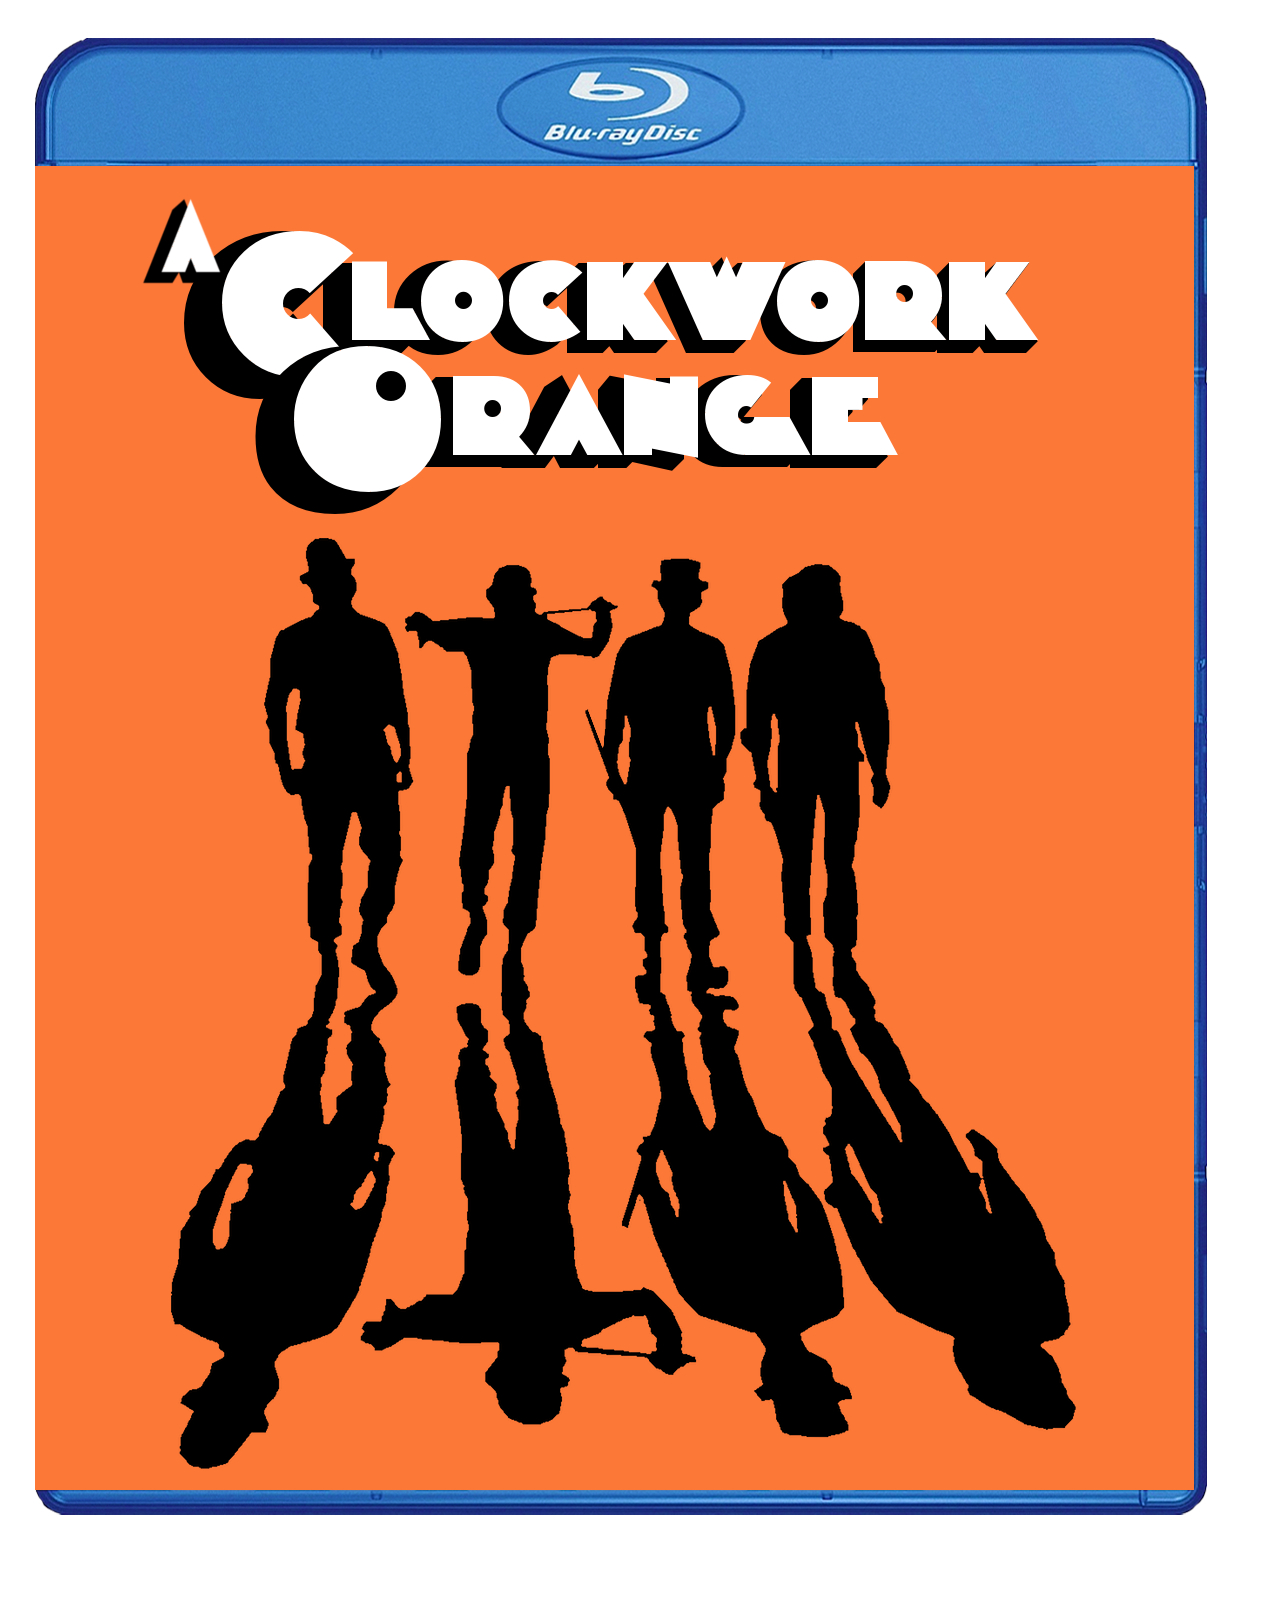 a clockwork orange blu ray cover version by bradymajor on   a clockwork orange blu ray cover version 3 by bradymajor